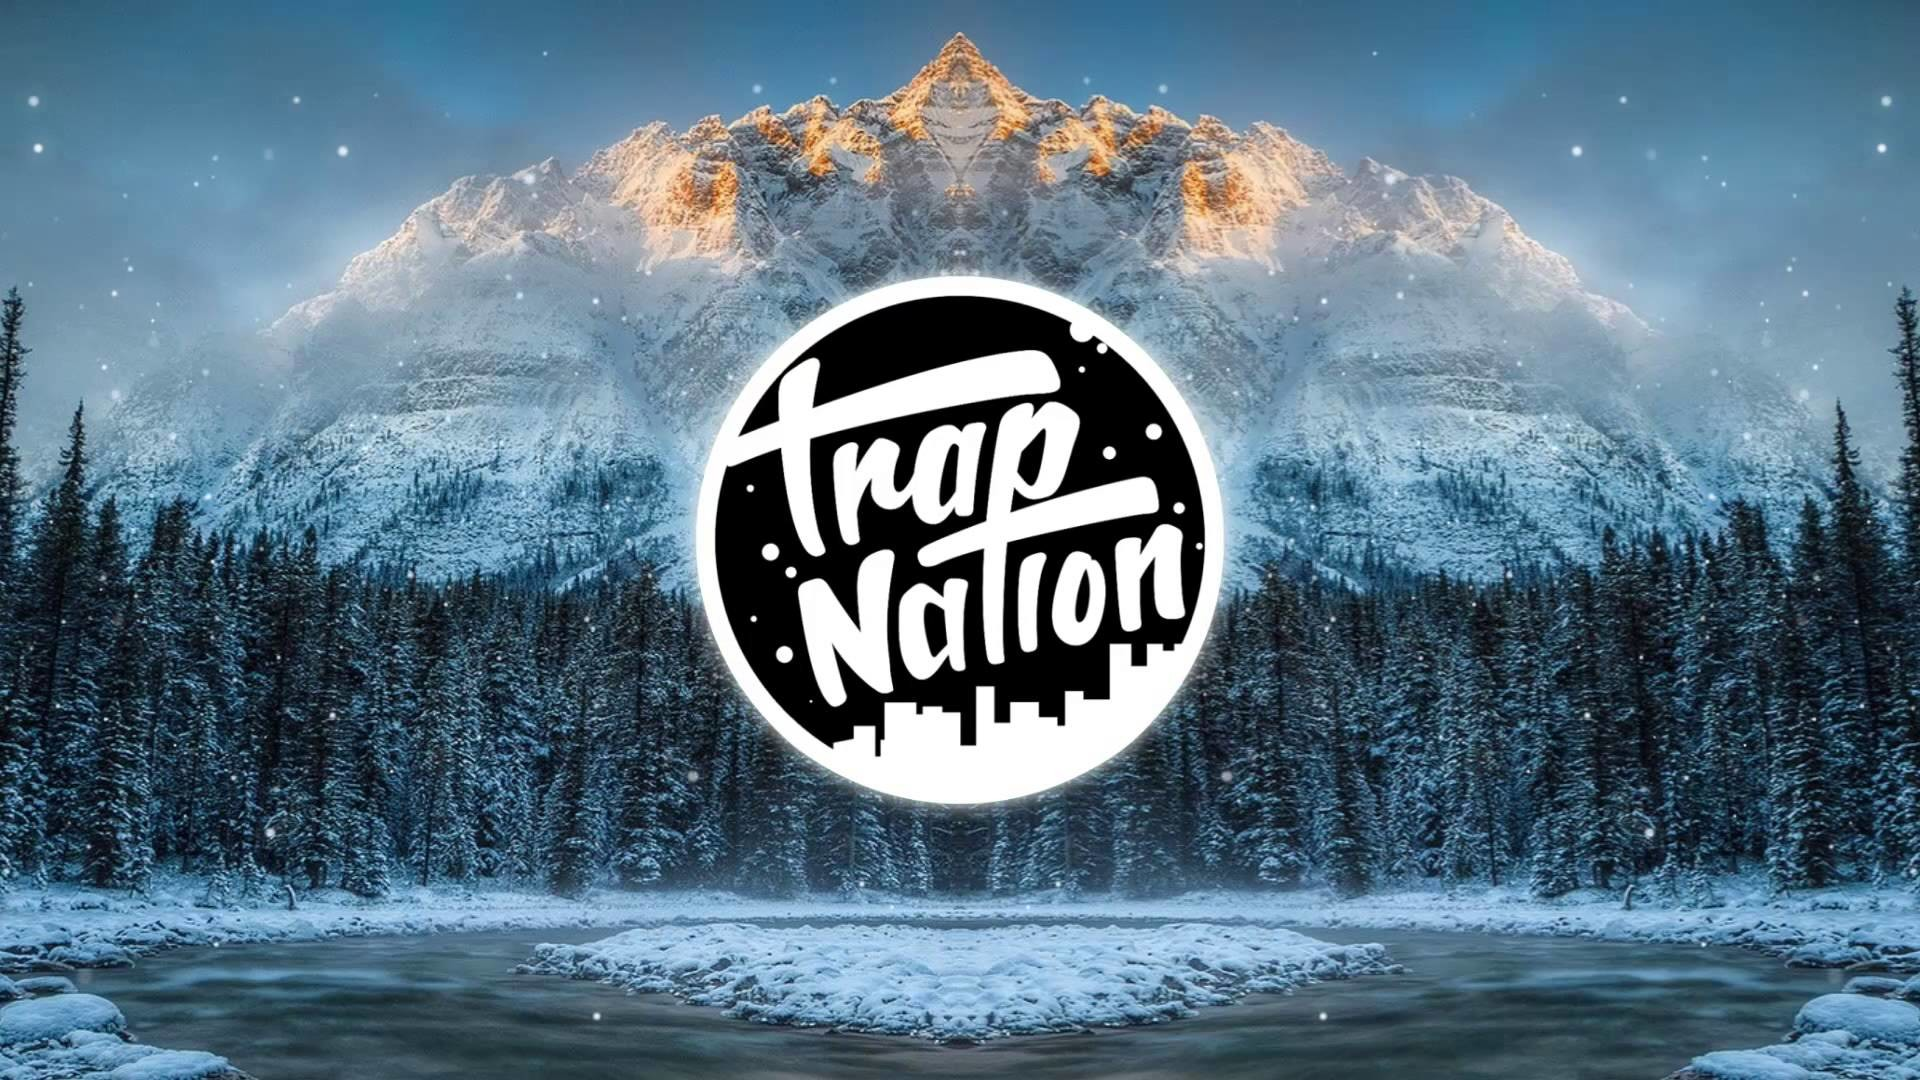 Trap Nation Wallpapers ①